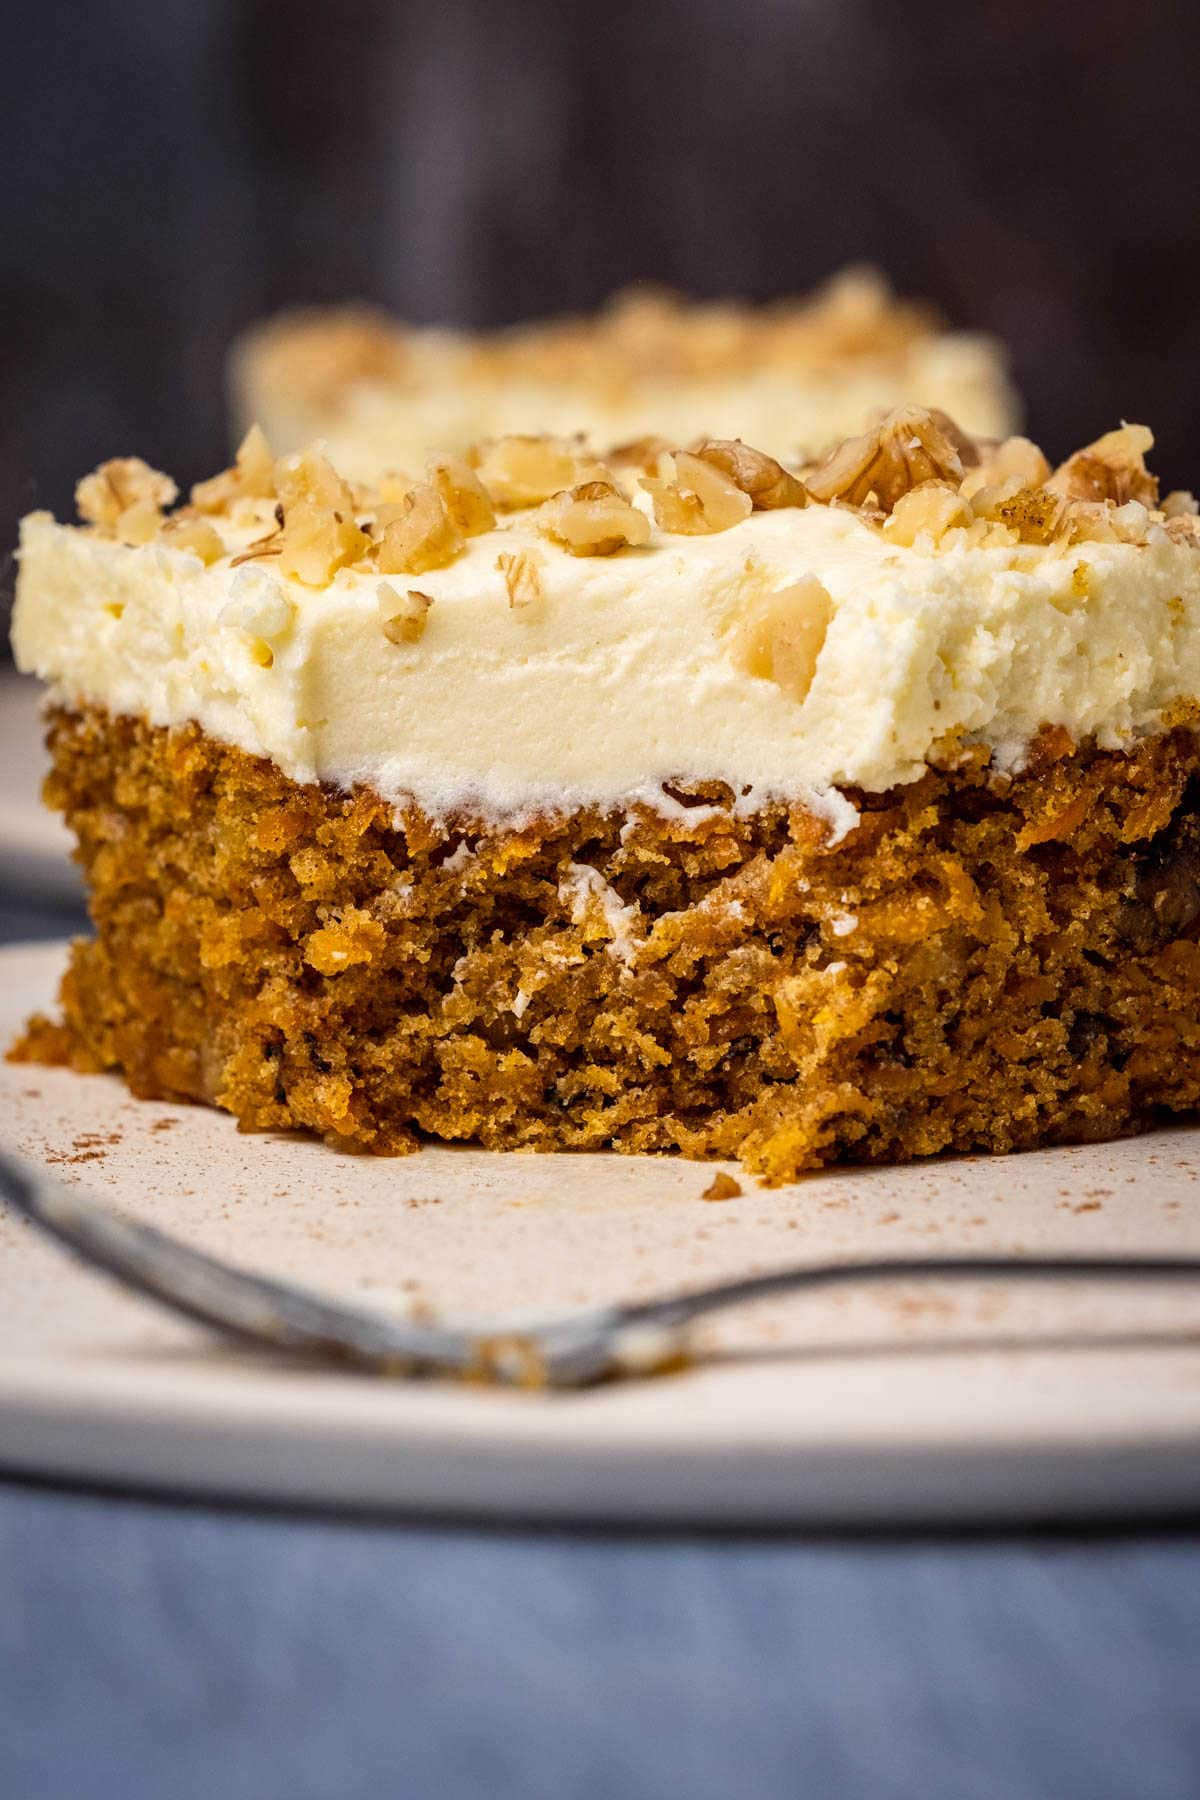 Slice of carrot cake on a white plate with a cake fork.